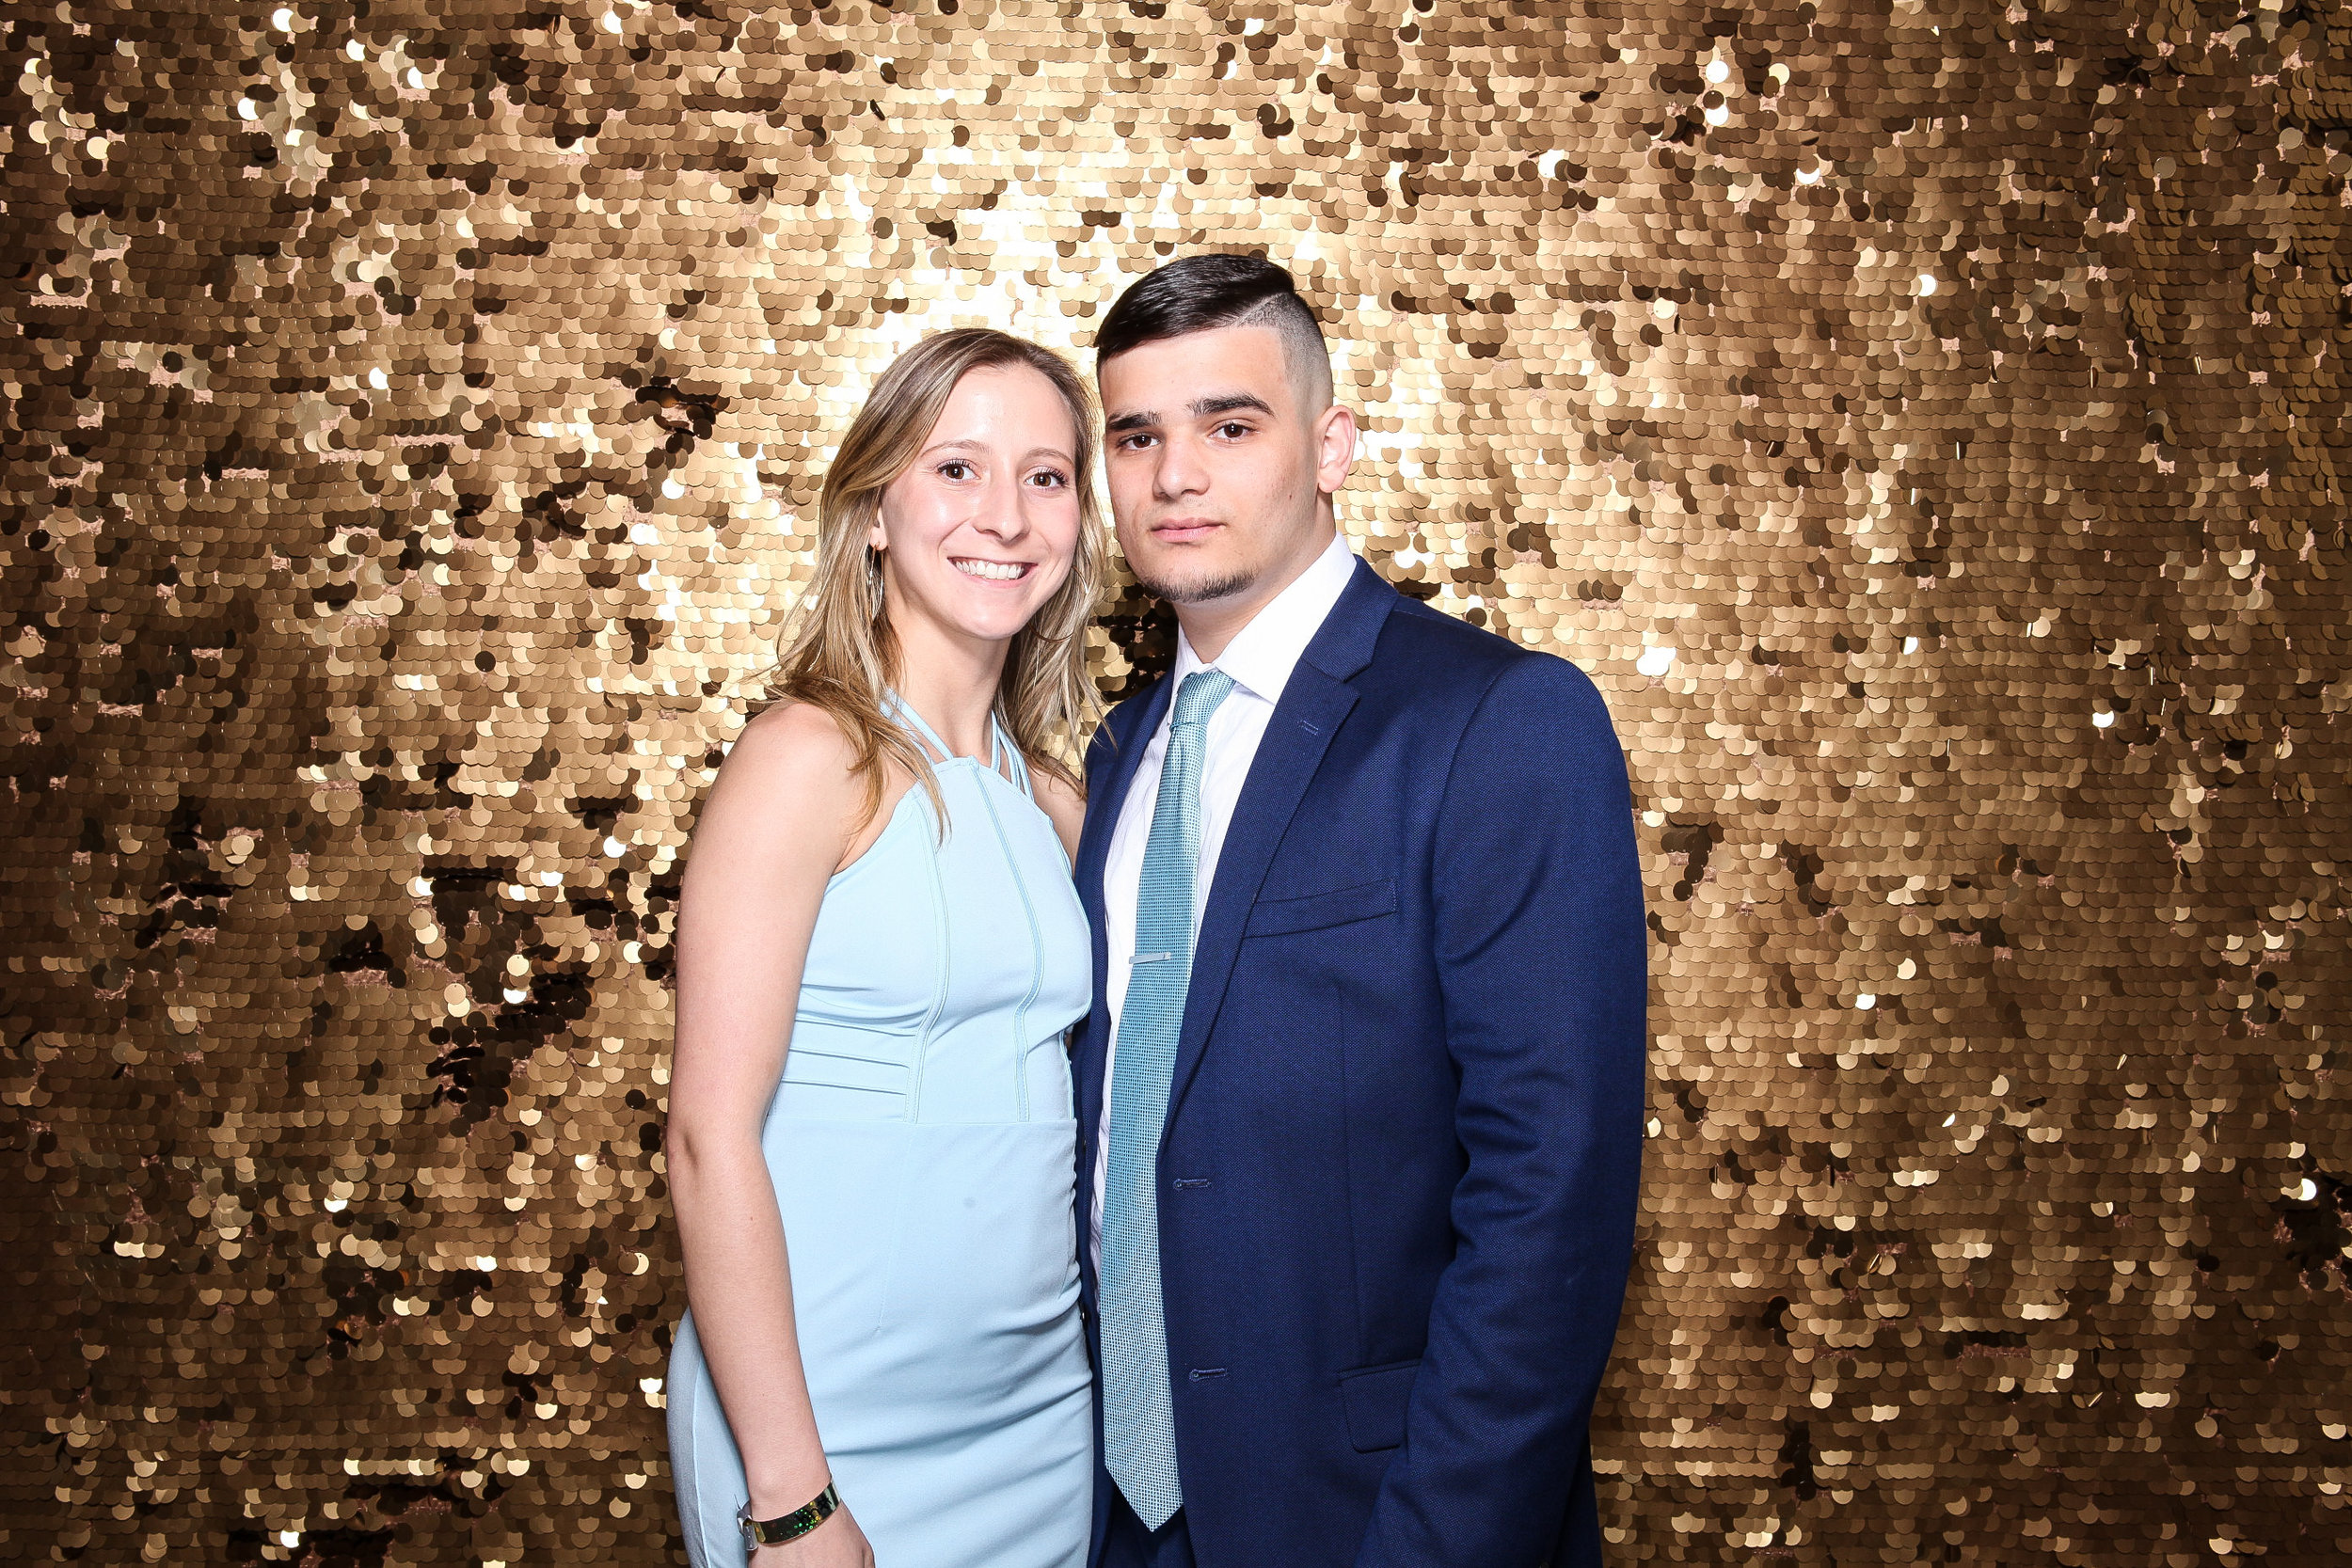 20190503_Adelphi_Senior_Formal-070.jpg